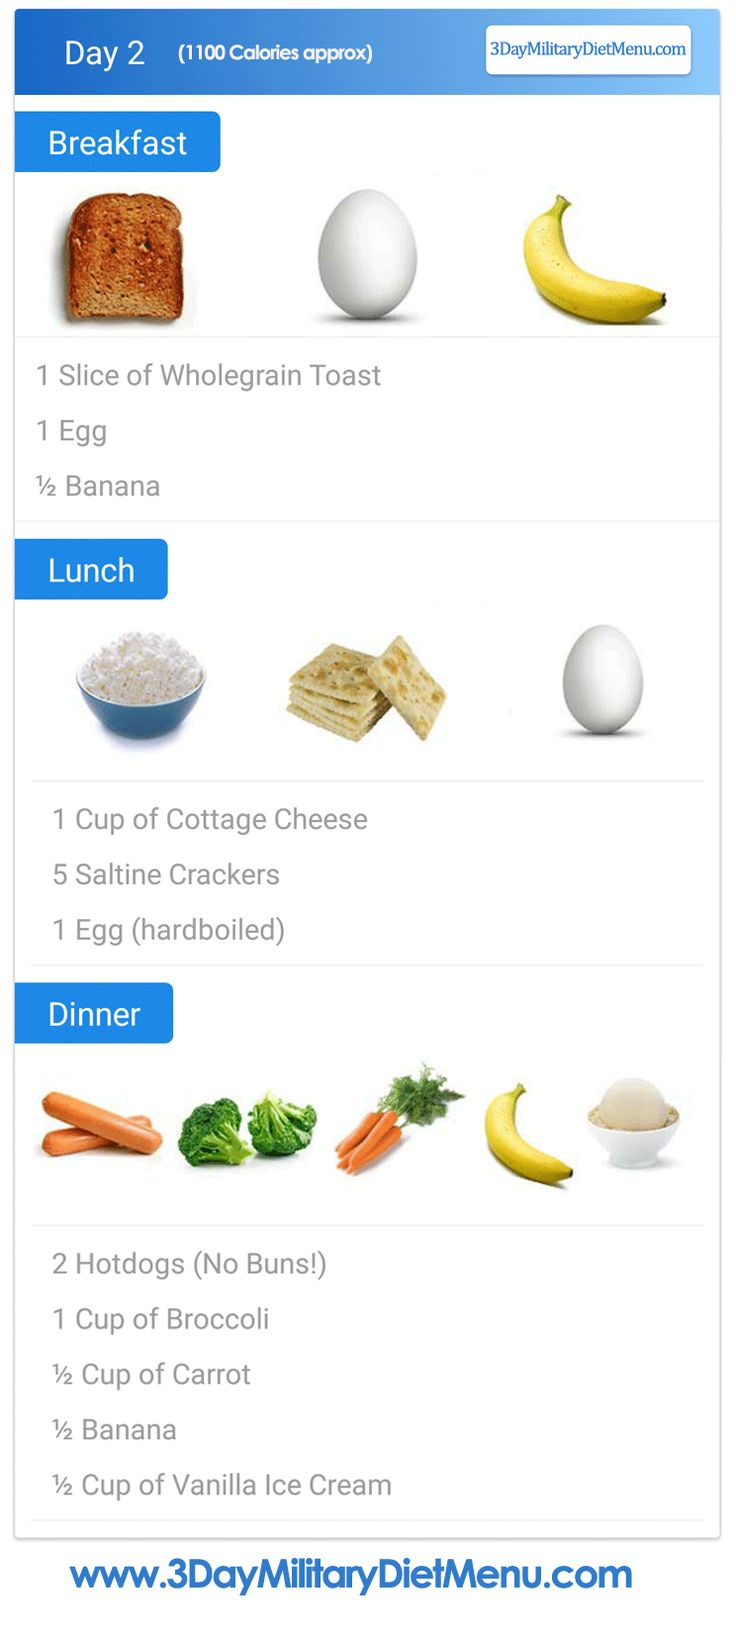 Military Diet Day 2 Meal Plan: Breakfast, Lunch and Dinner.